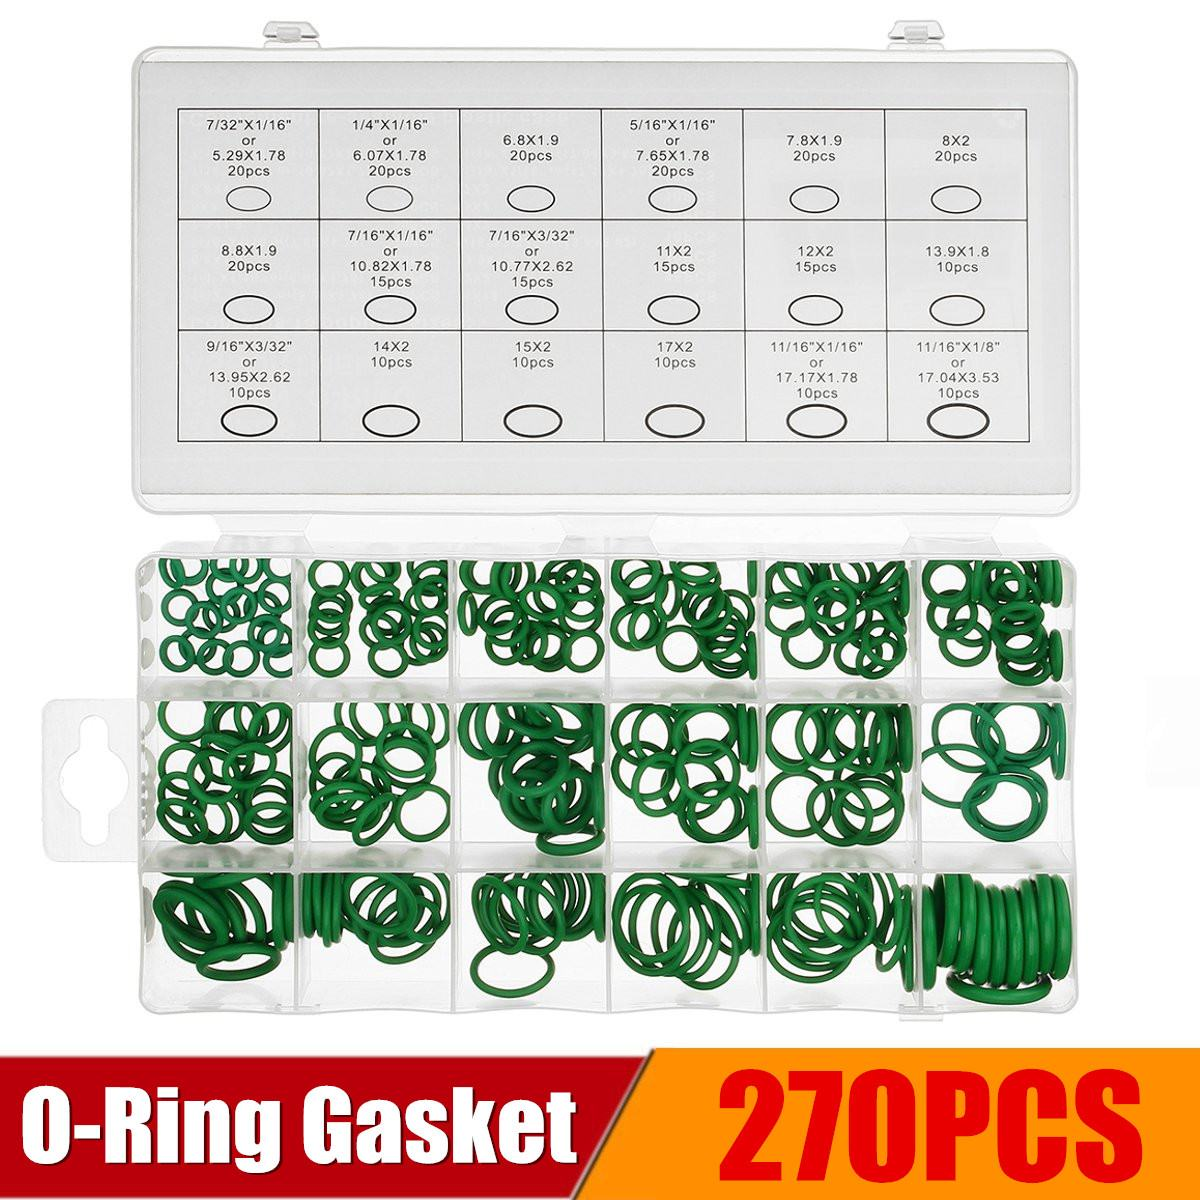 270Pcs/Lot Nitrile Rubber Gaskets O-Ring Washer Assortment Gasket Seal Kits Hardware High Pressure Temperature Resistance Green 270Pcs/Lot Nitrile Rubber Gaskets O-Ring Washer Assortment Gasket Seal Kits Hardware High Pressure Temperature Resistance Green